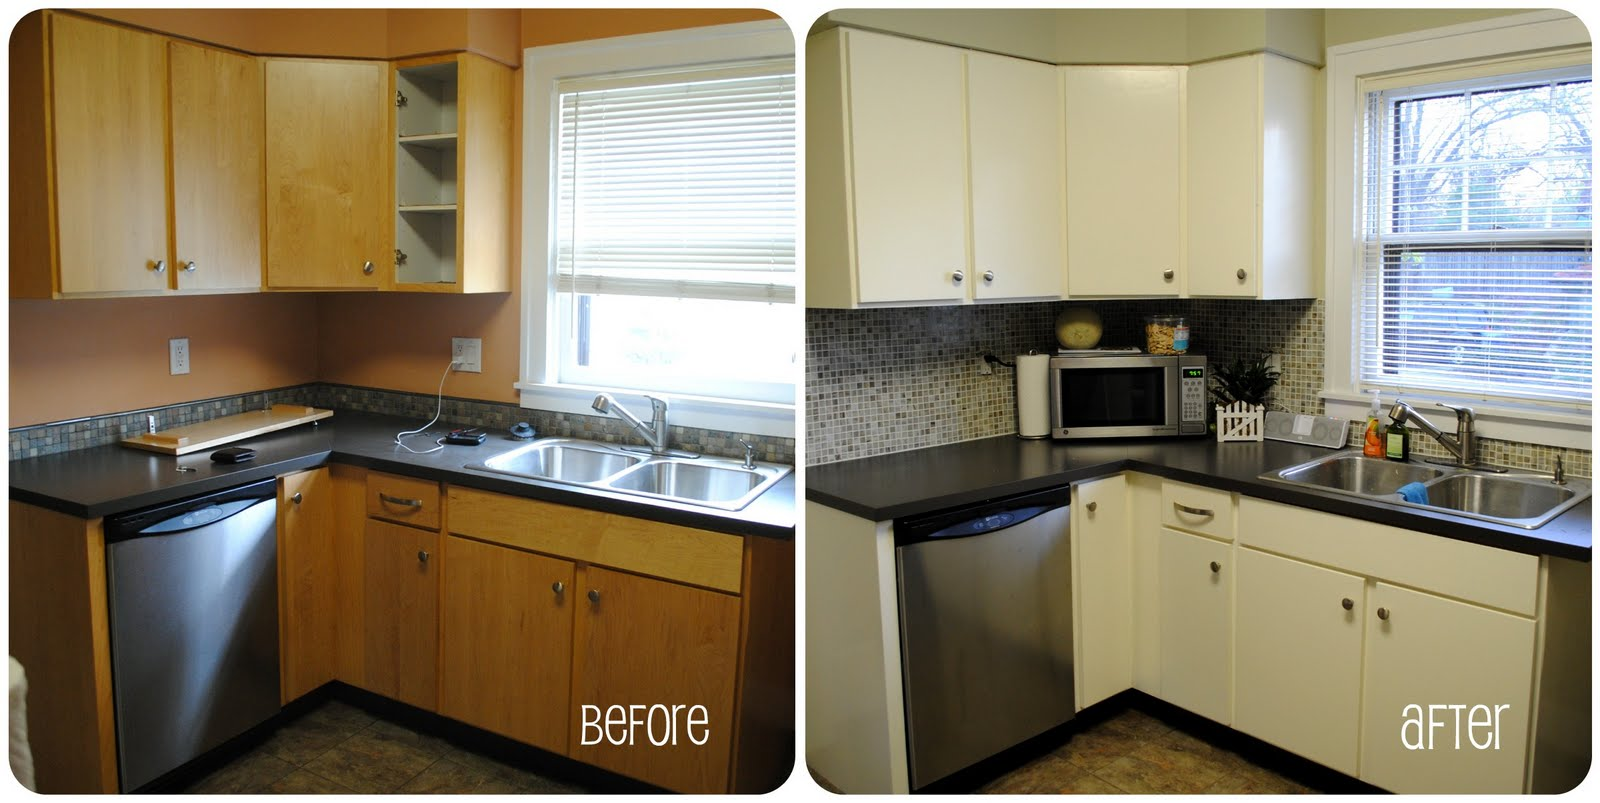 White Kitchen Cabinets Before and After